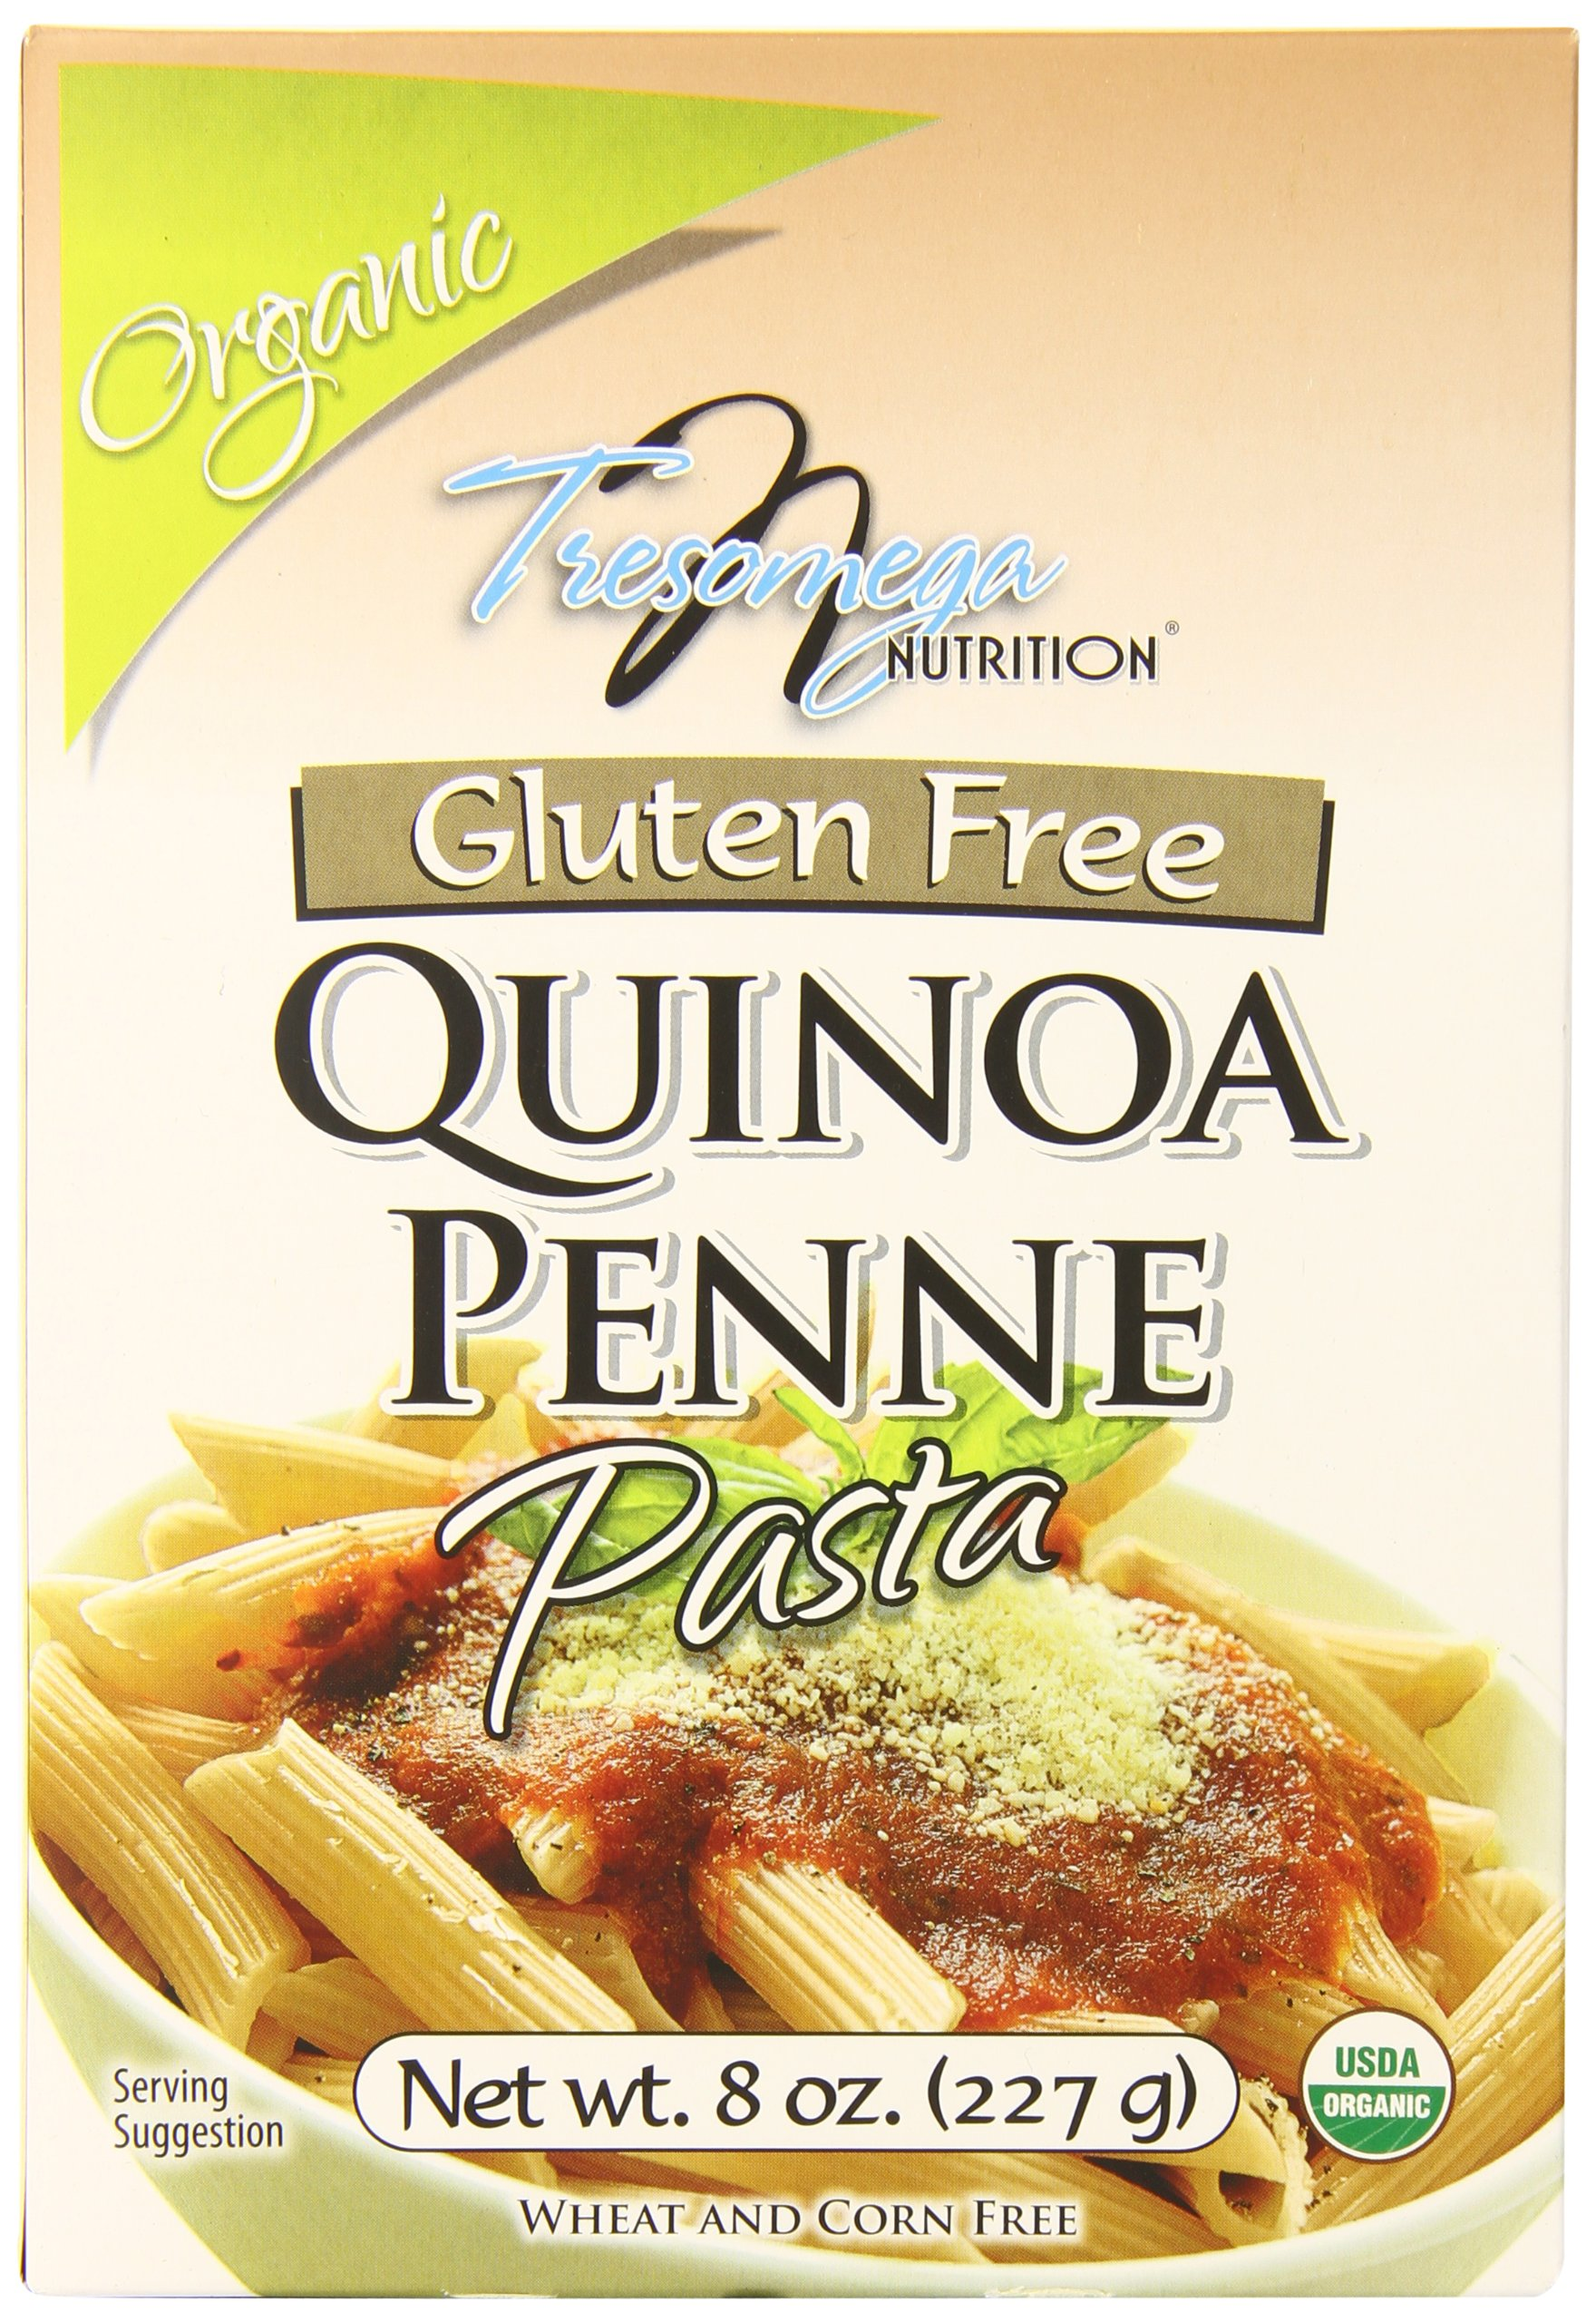 TresOmega Nutrition–Organic Quinoa Penne Pasta–Made with Organic Quinoa, Rice and Amaranth for A Meal High in Protein and Fiber–8 oz. Box